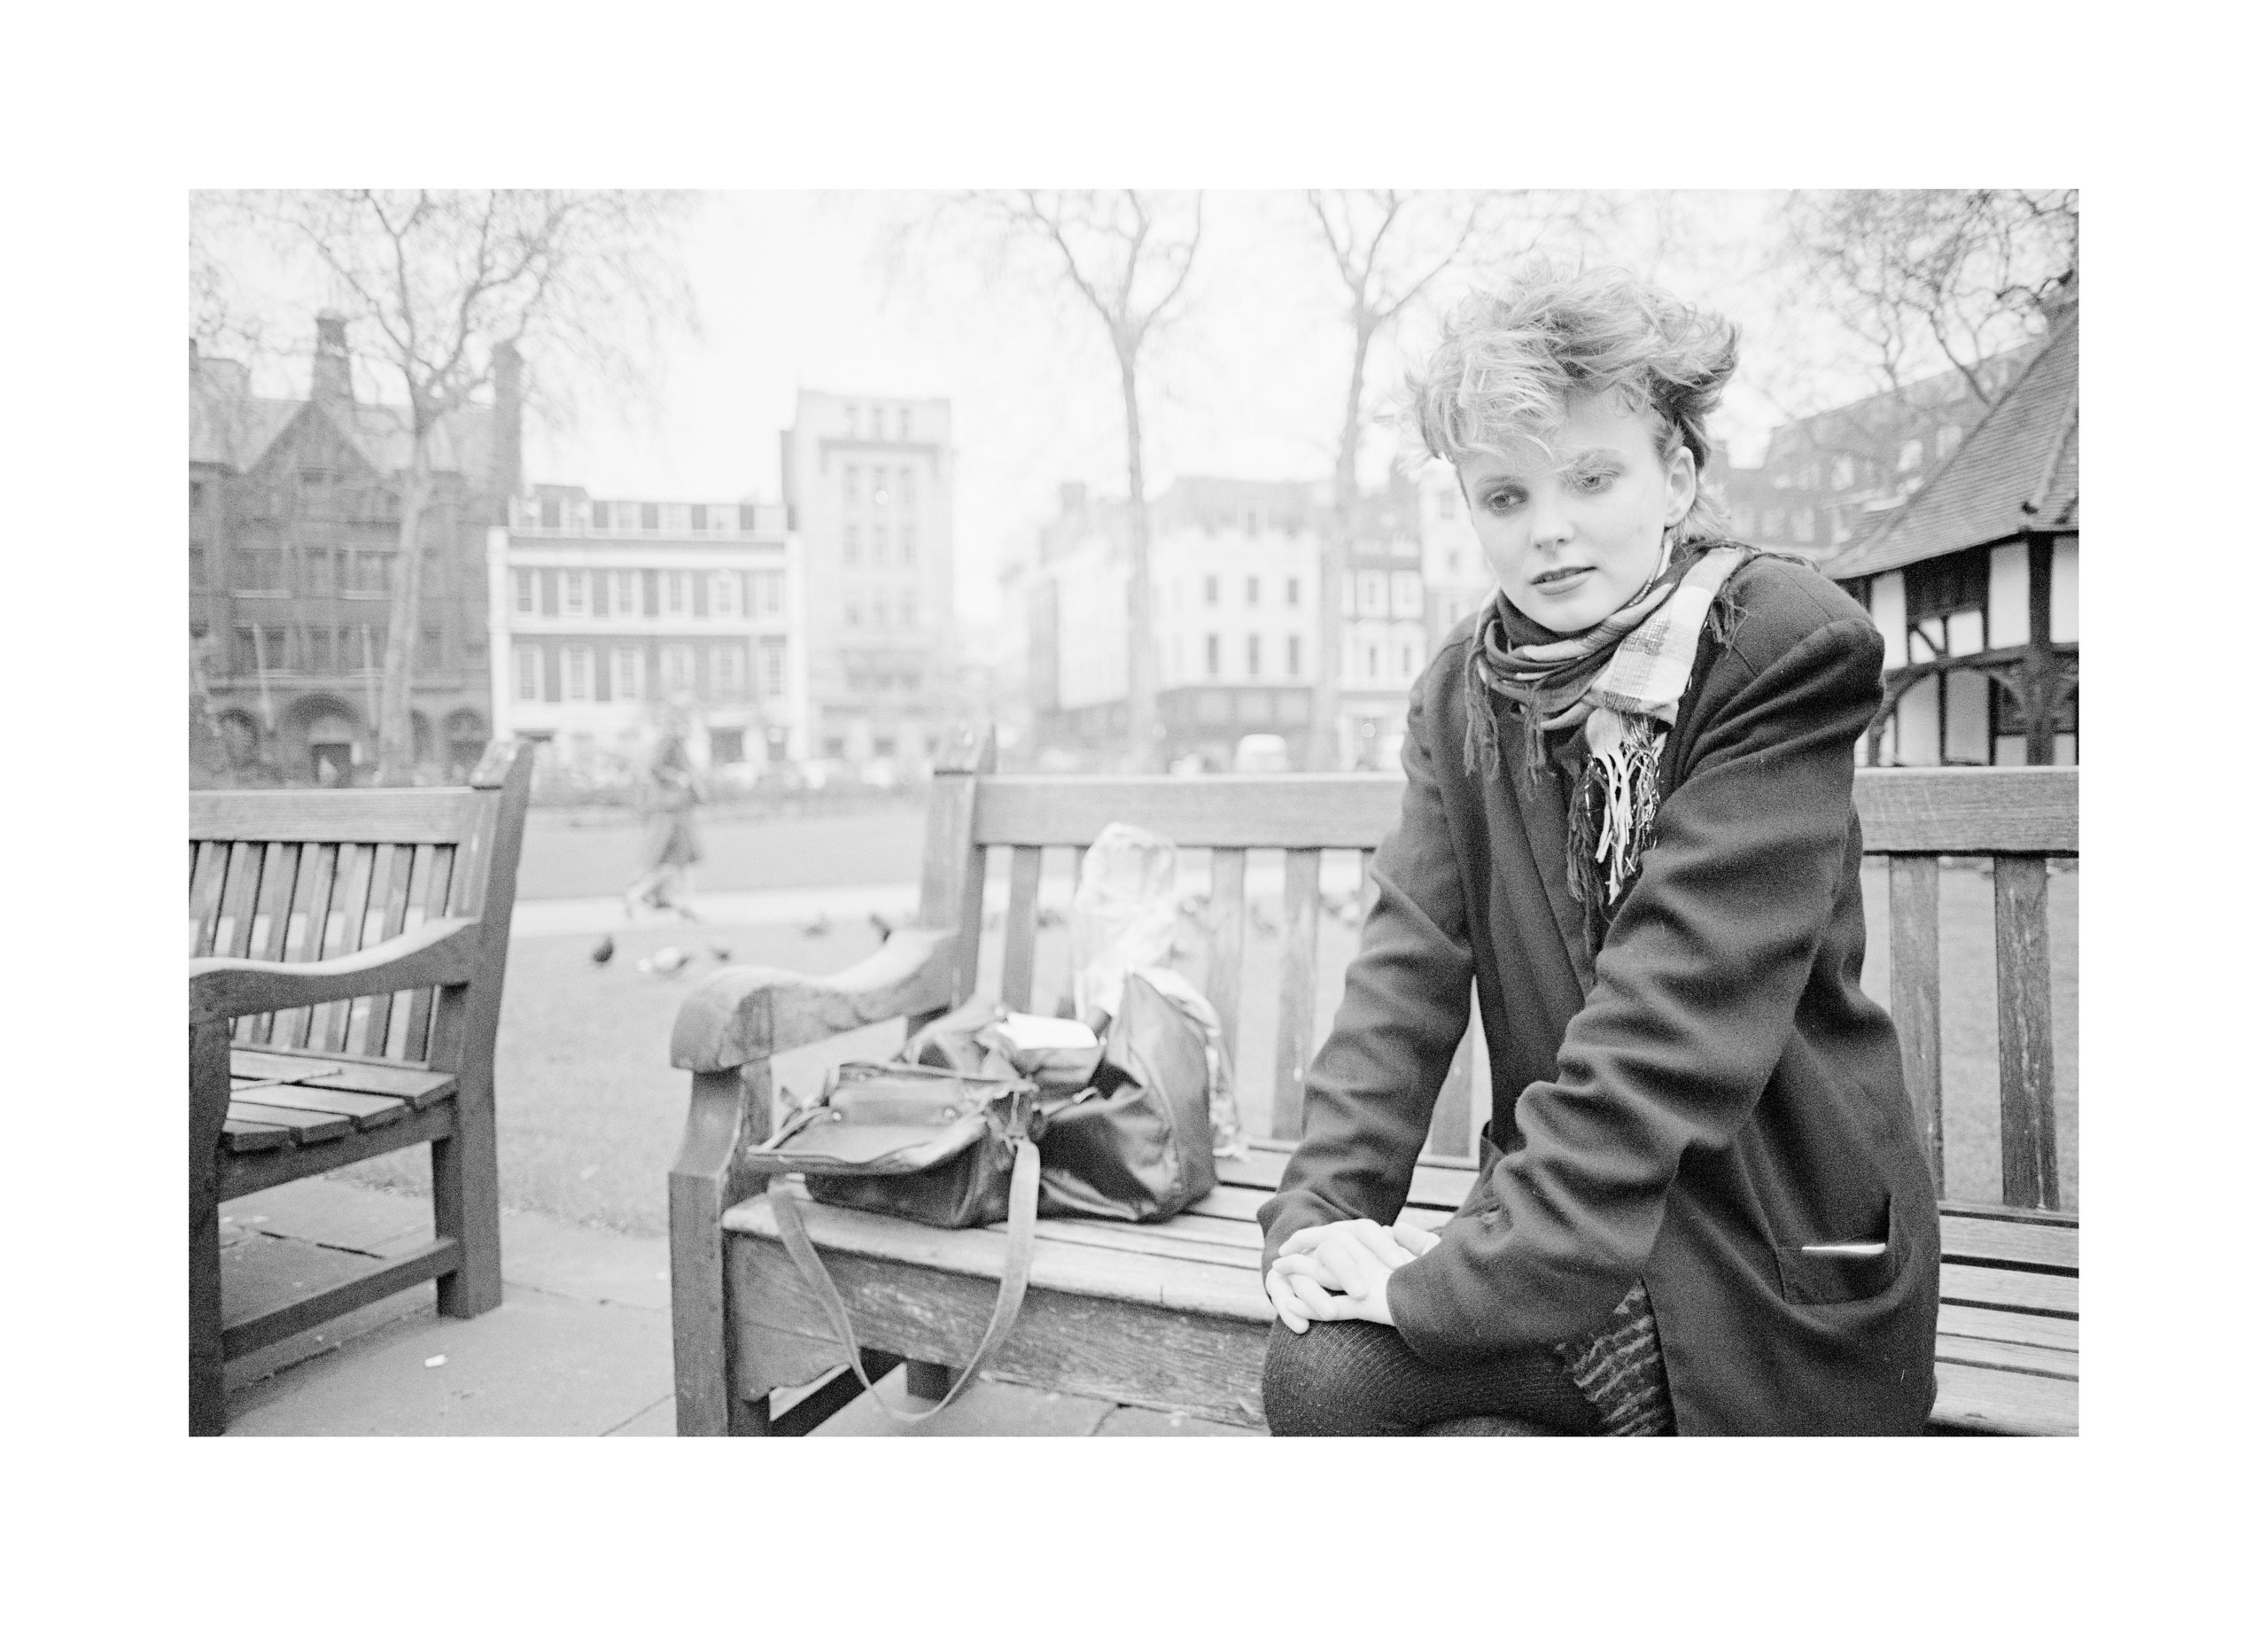 Image of Clare Grogan (on bench) by Harry Papadopoulos